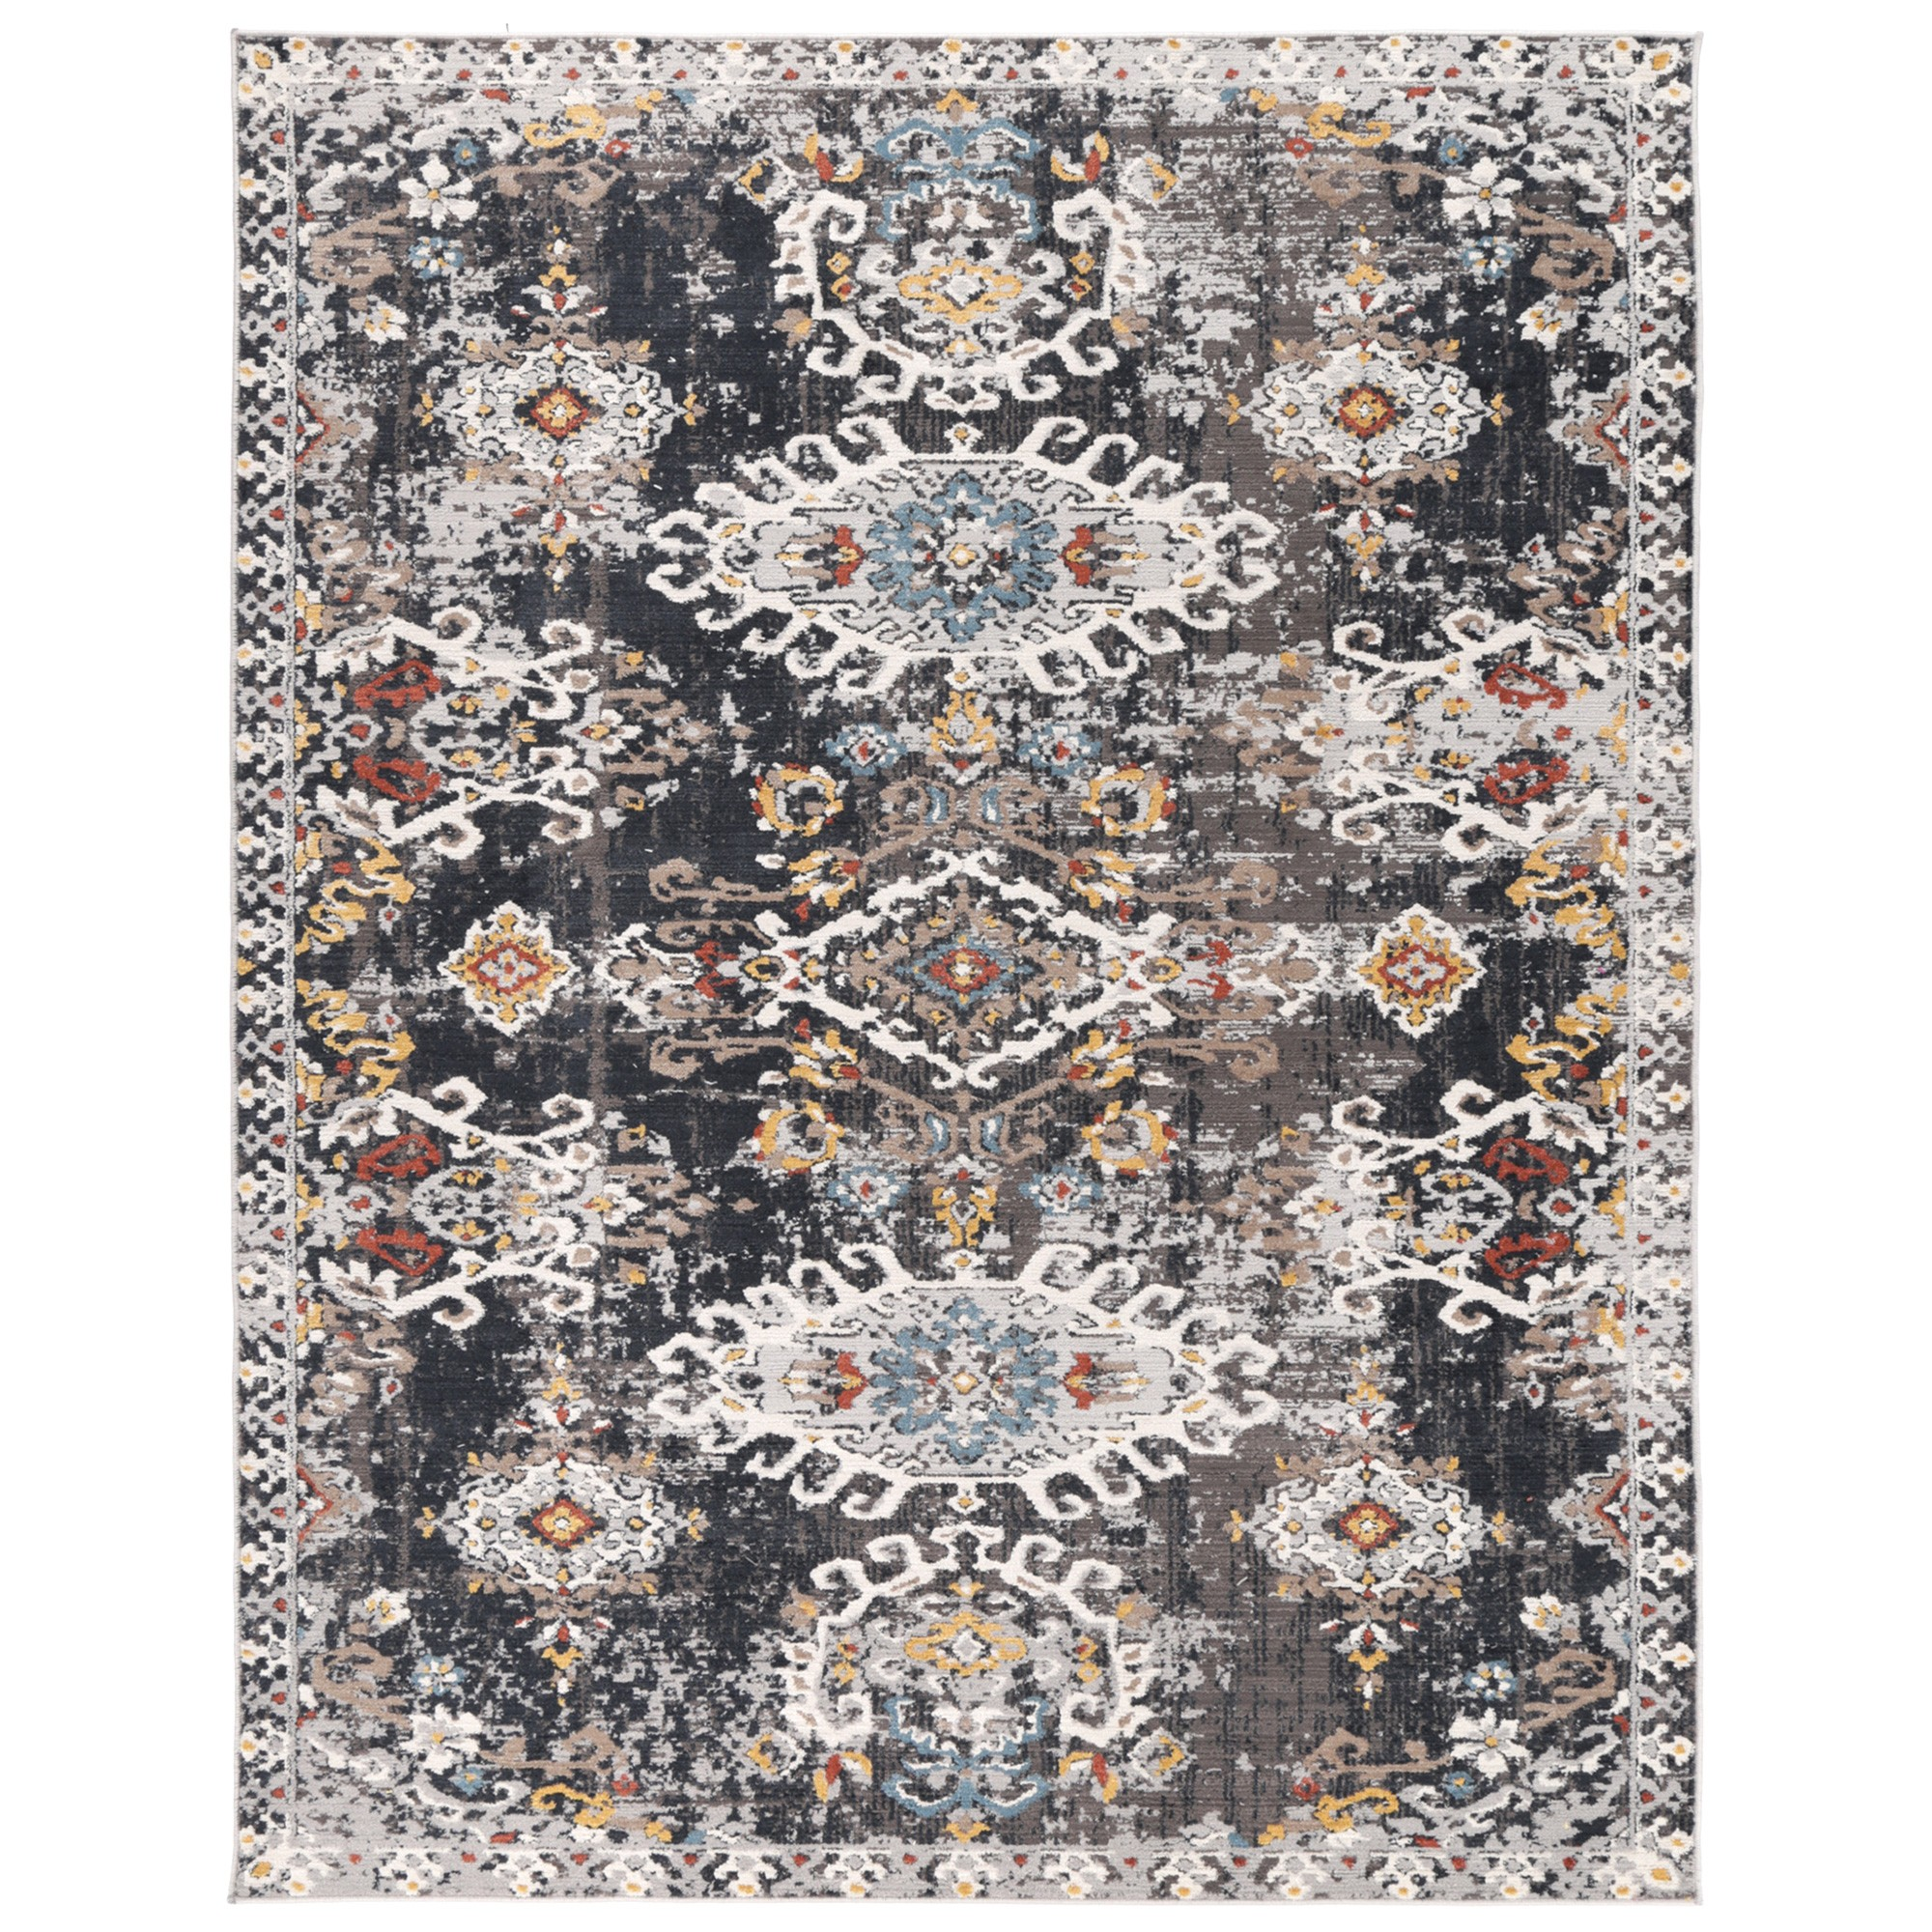 Havana No.01 Transitional Oriental Rug, 380x280cm